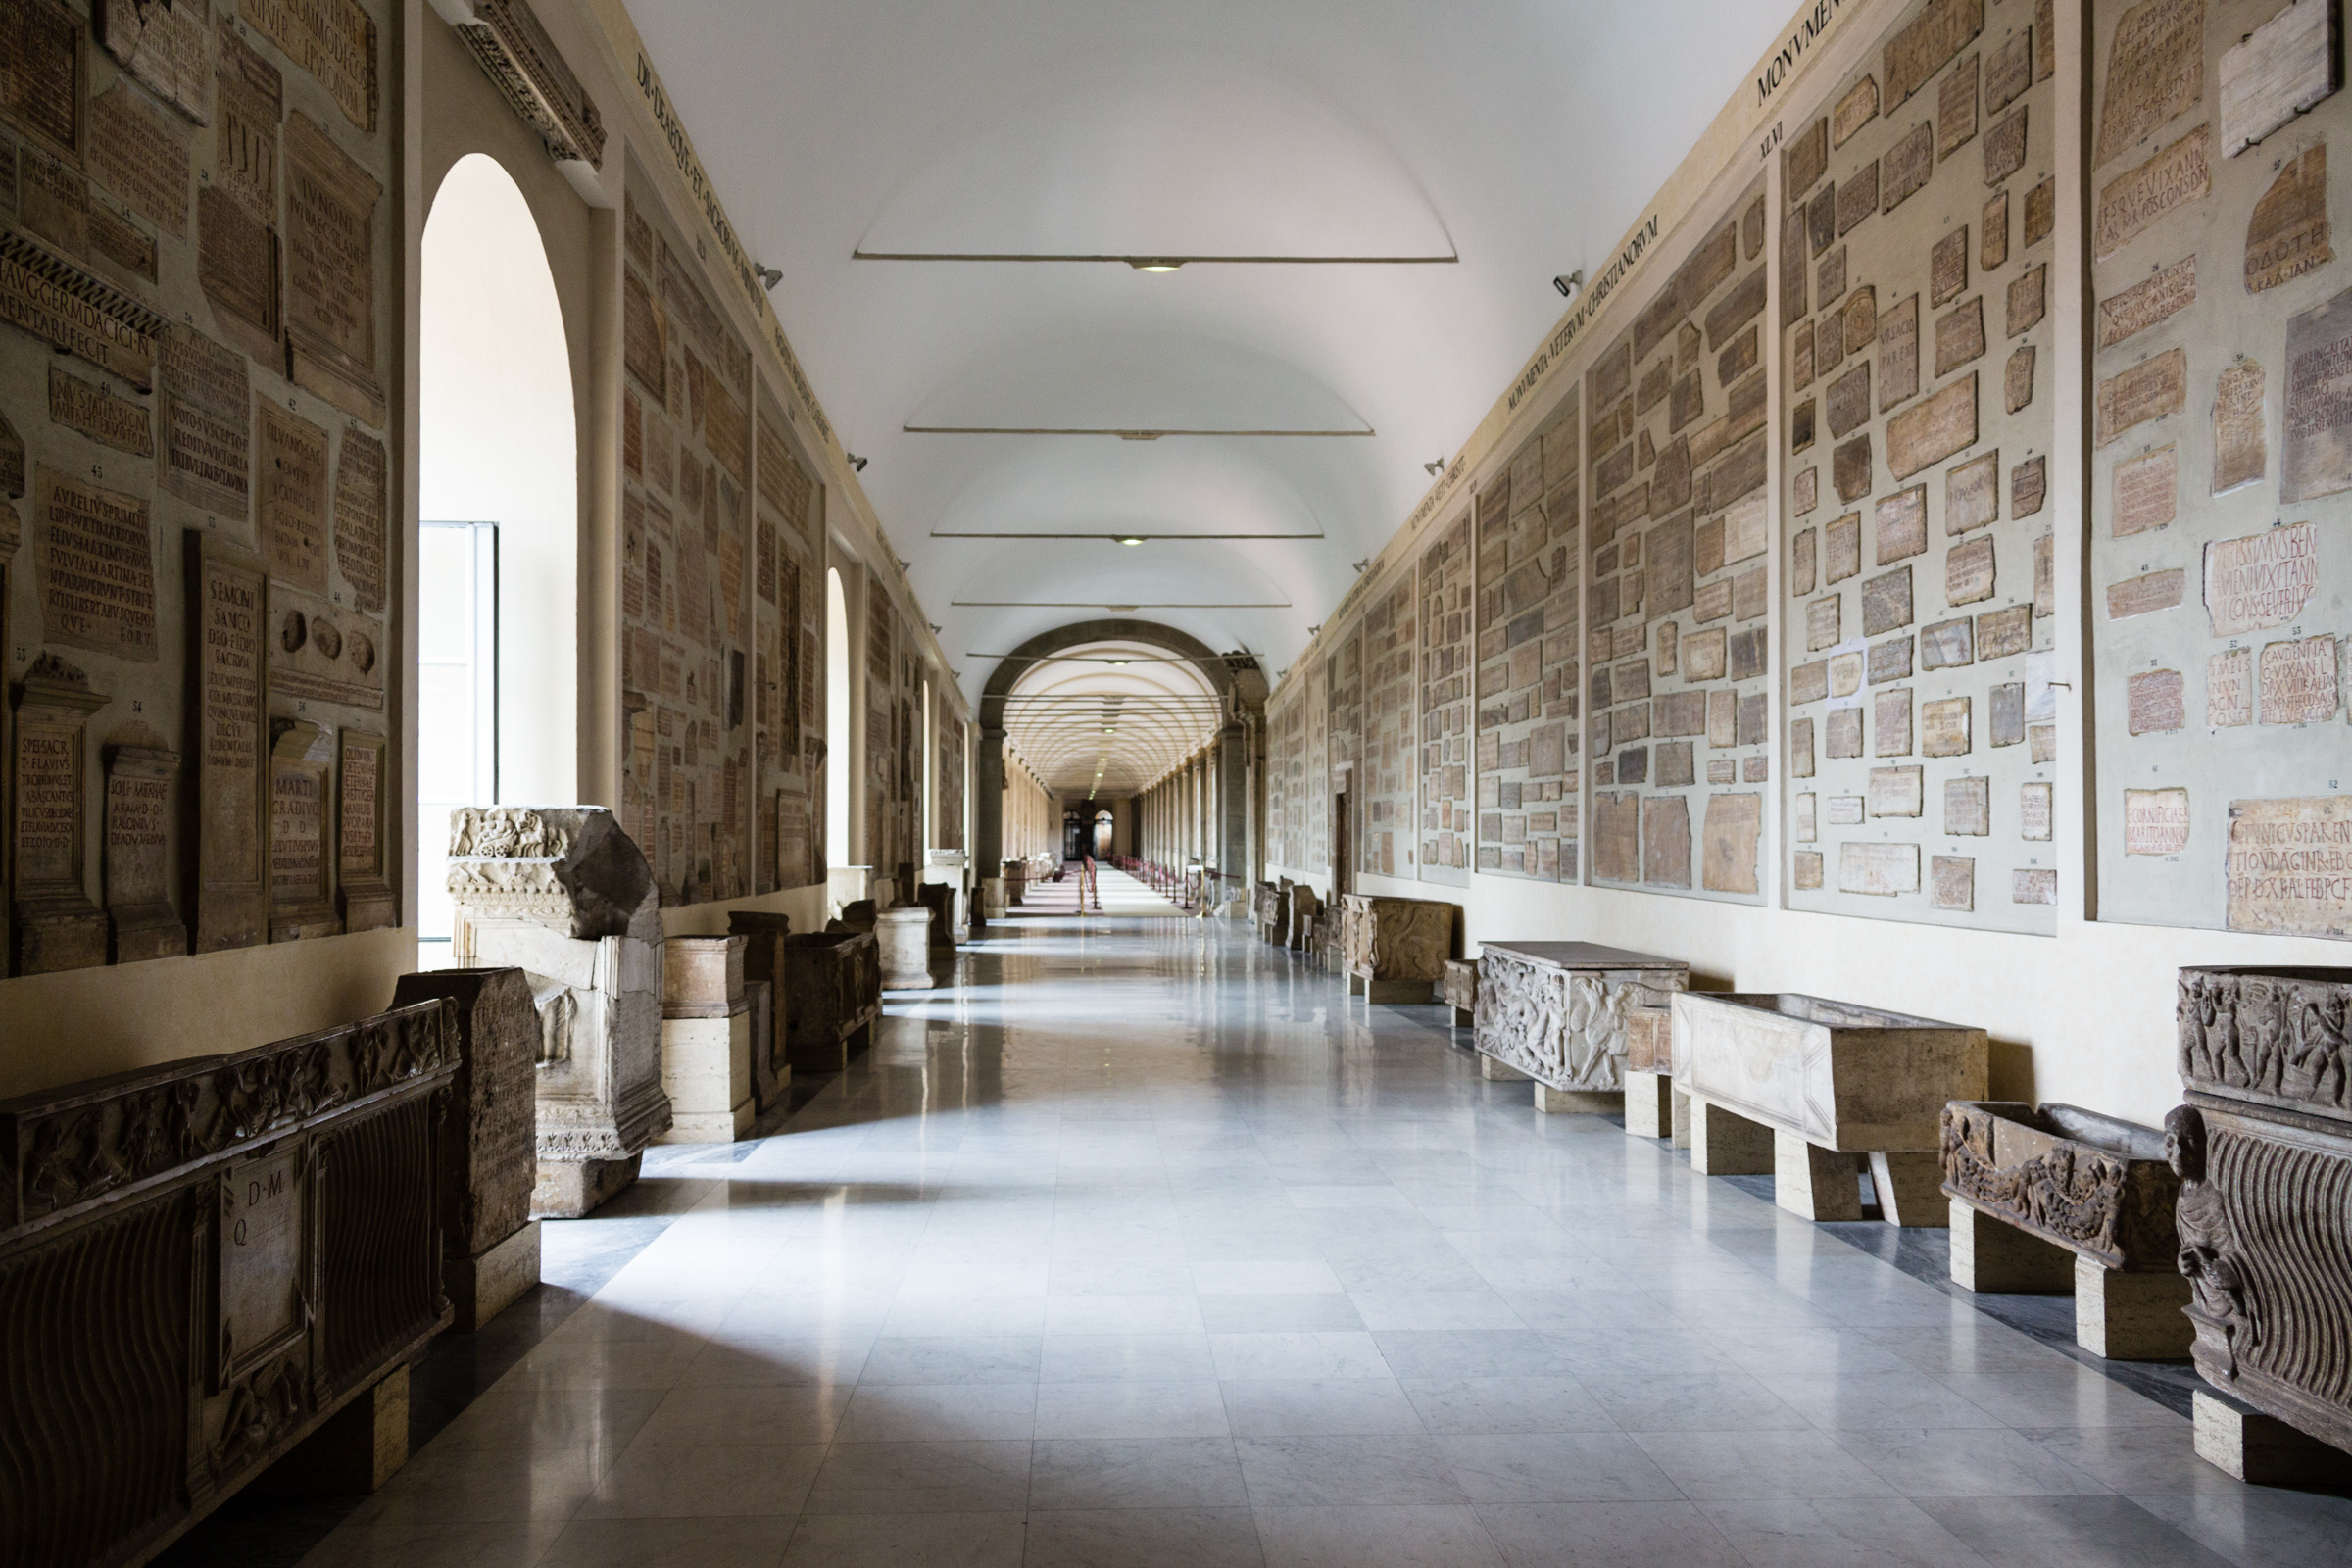 A museum hallway - 3DTotal Forums